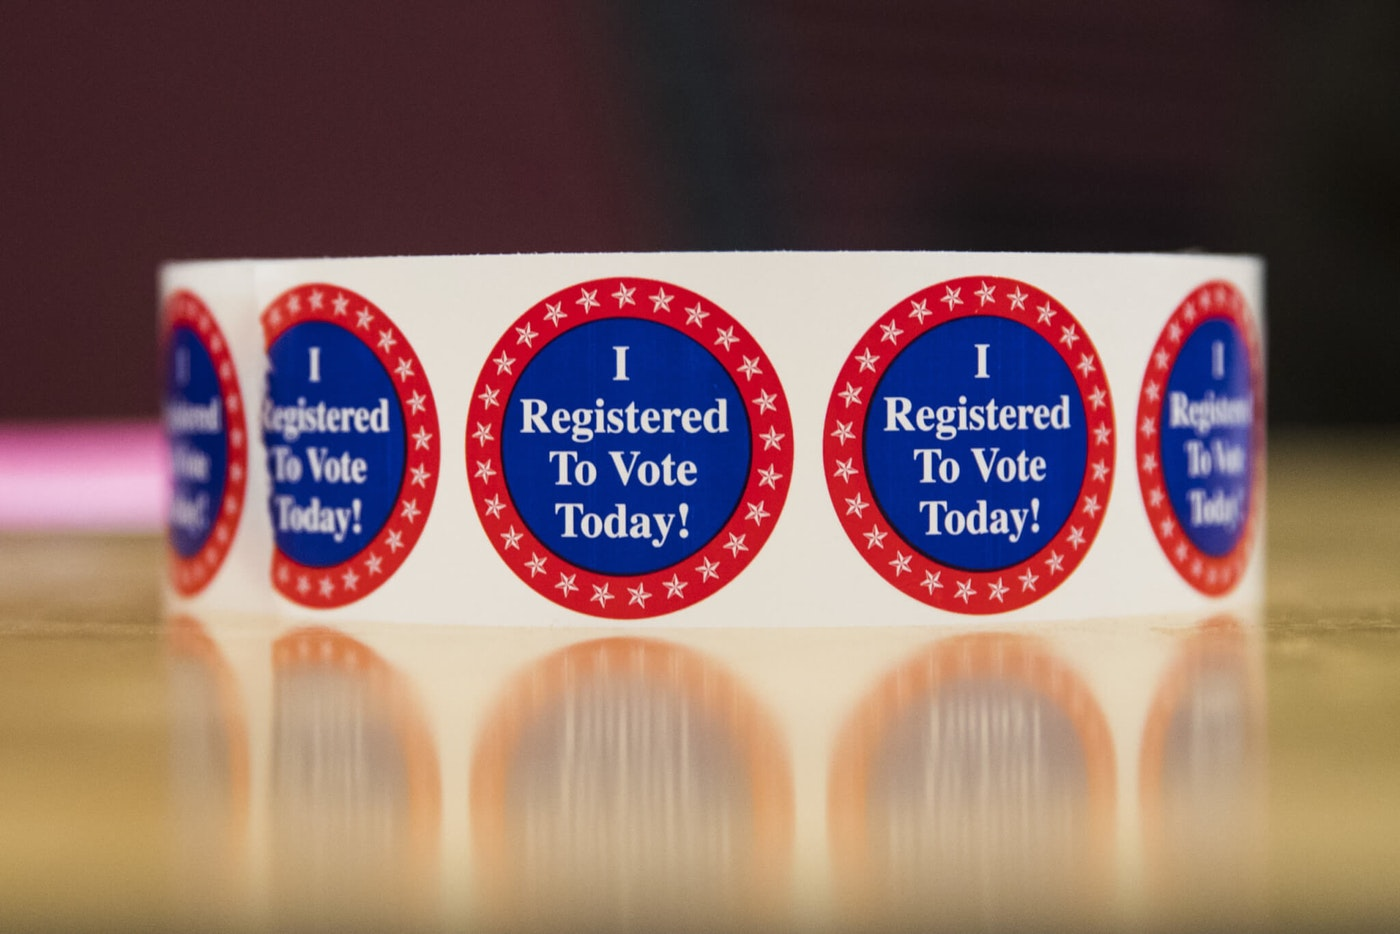 I Registered To Vote Today stickers in New Hampshire, U.S.. Photographer: Adam Glanzman/Bloomberg